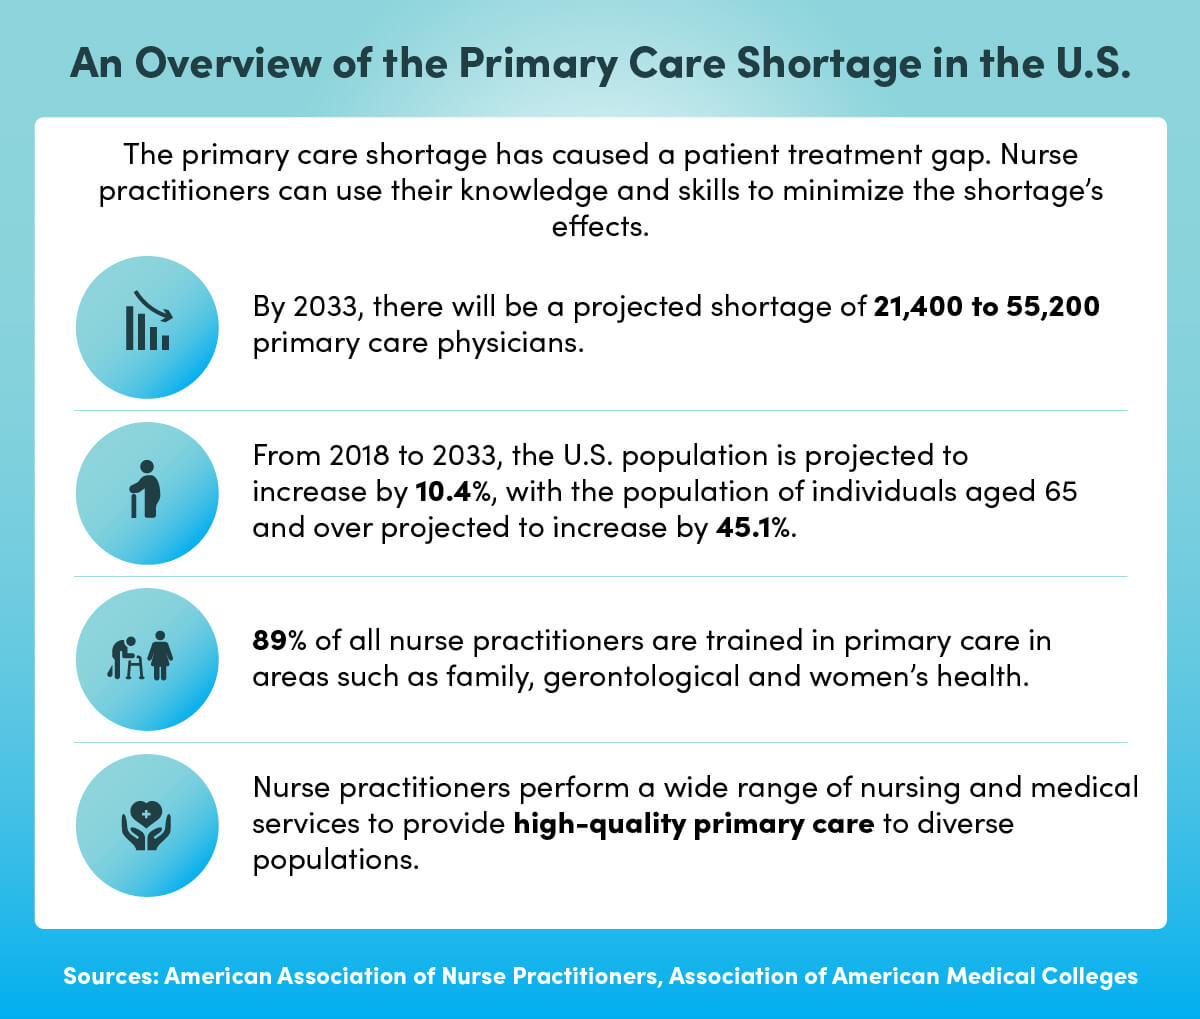 An overview of the primary care shortage in the U.S.